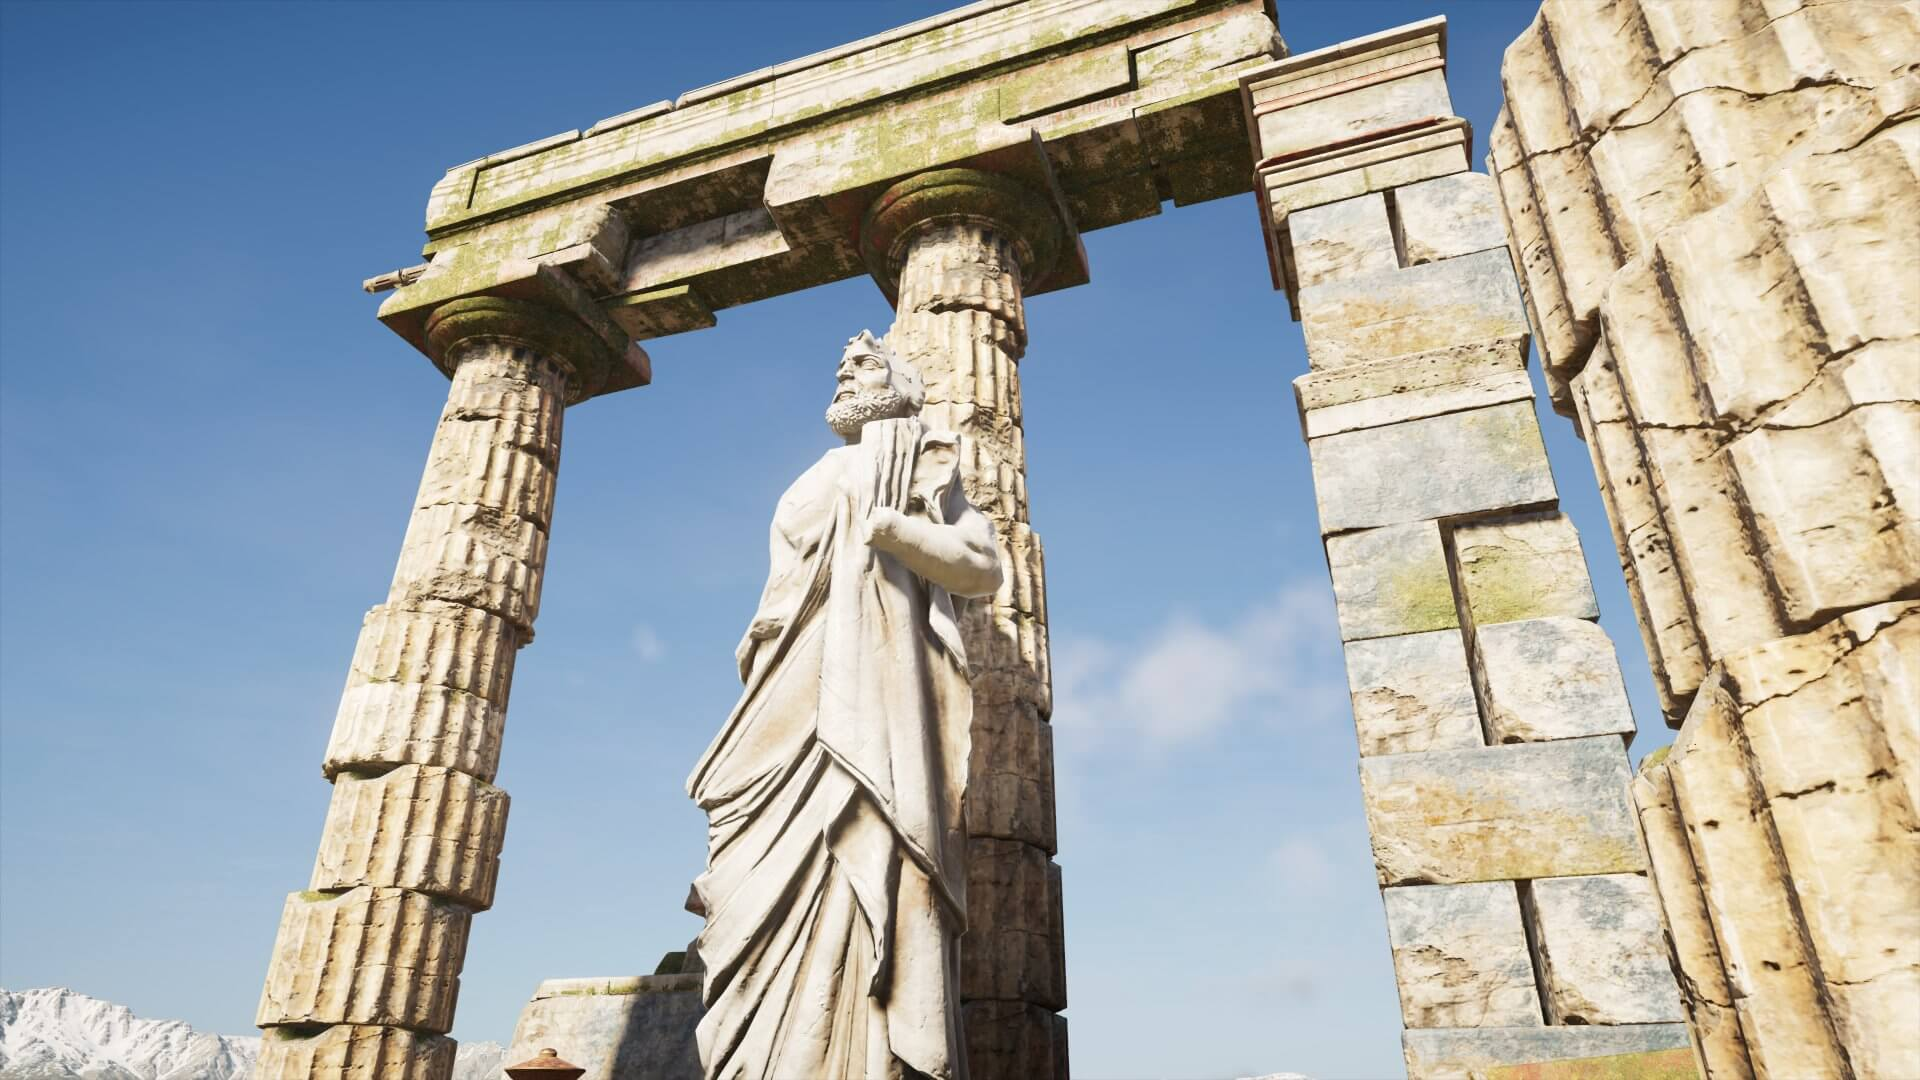 Assassins Creed® Odyssey  73 - Assassin's Creed Odyssey: confira o guia de dicas e truques do game